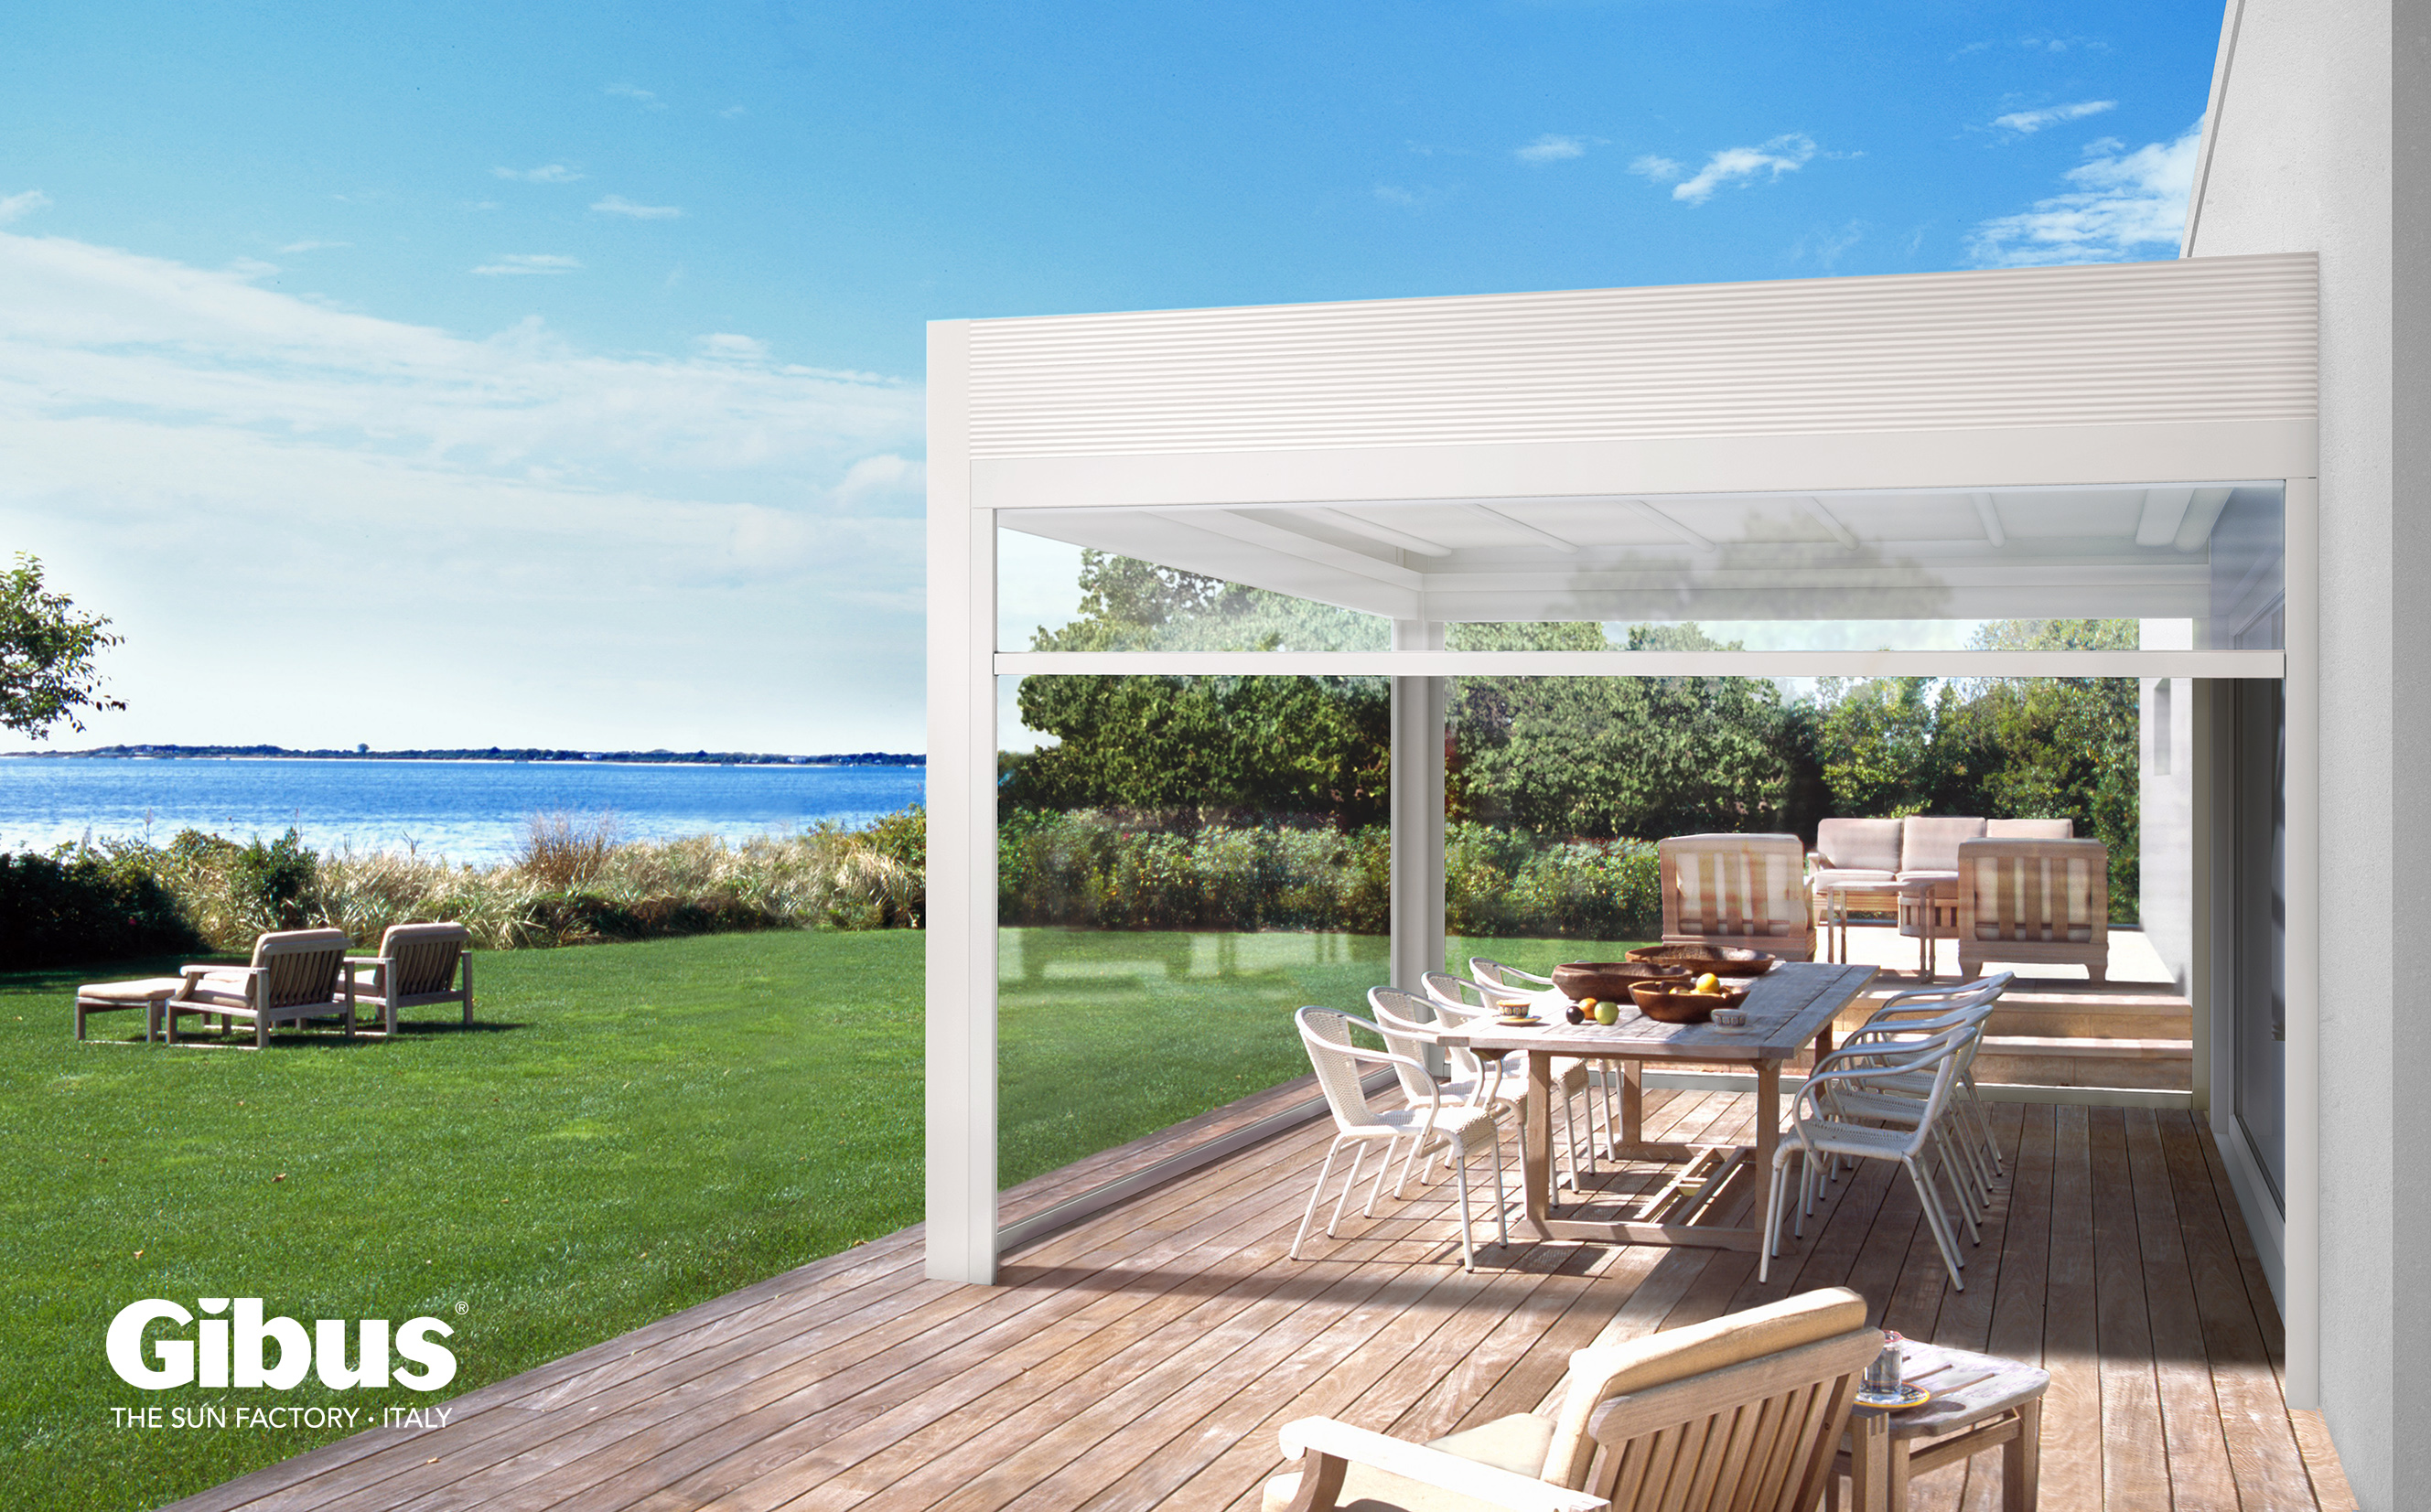 East Hampton, Long Island, New York State, USA --- beach house in Long Island with pergola and lounge chairs on the deck. --- Image by © Elliott Kaufman/Corbis